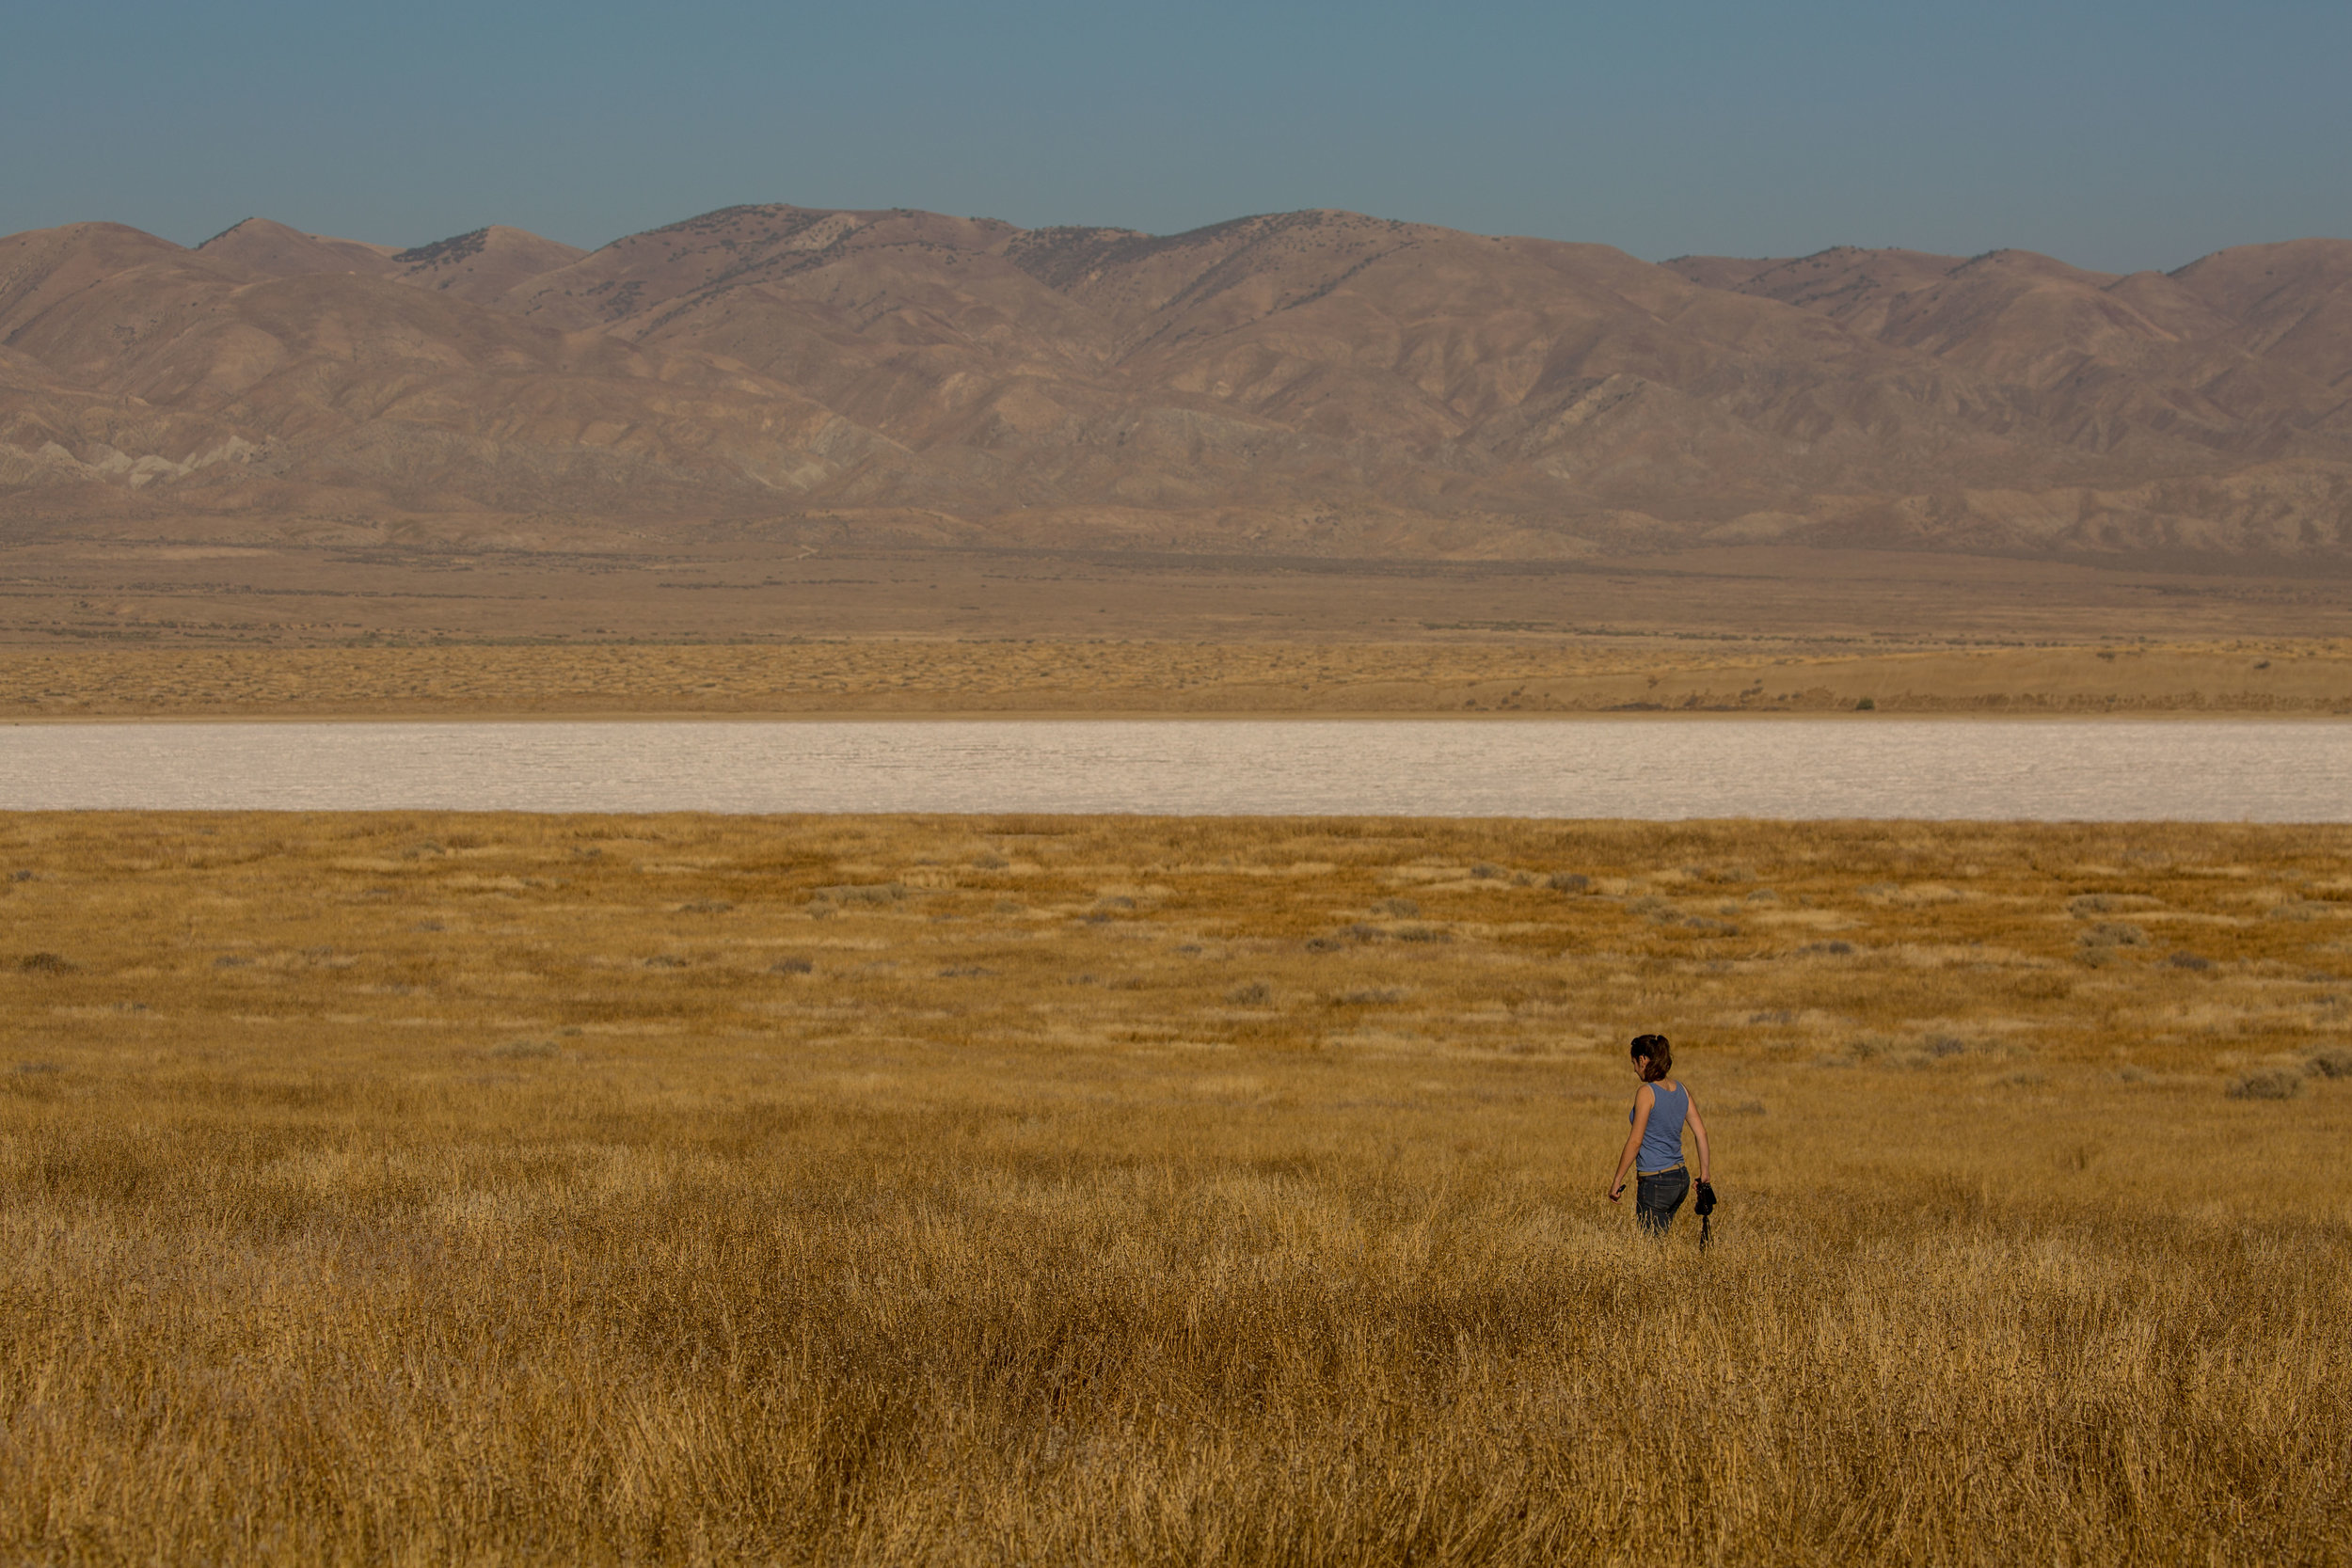 Soda Lake and the Temblor mountain range in Carrizo Plain National Monument, California